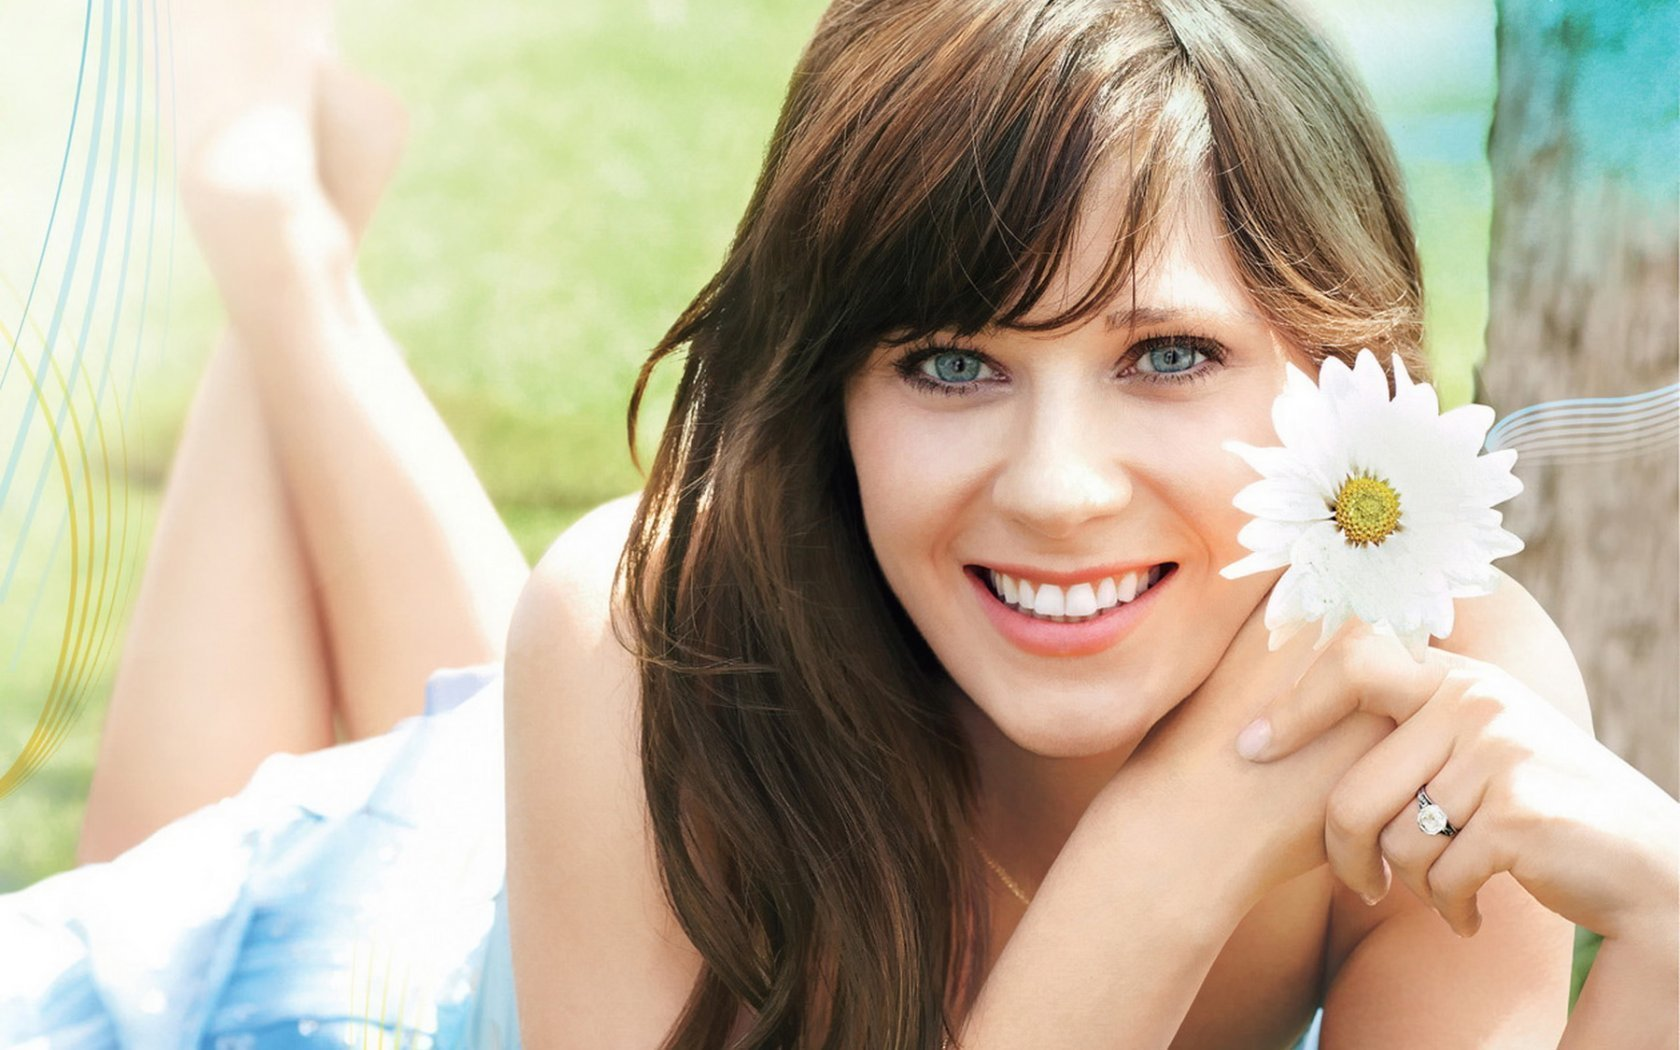 Zooey-Deschanel-Widescreen-Wallpaper-zooey-deschanel-8422251-1680-1050.jpg